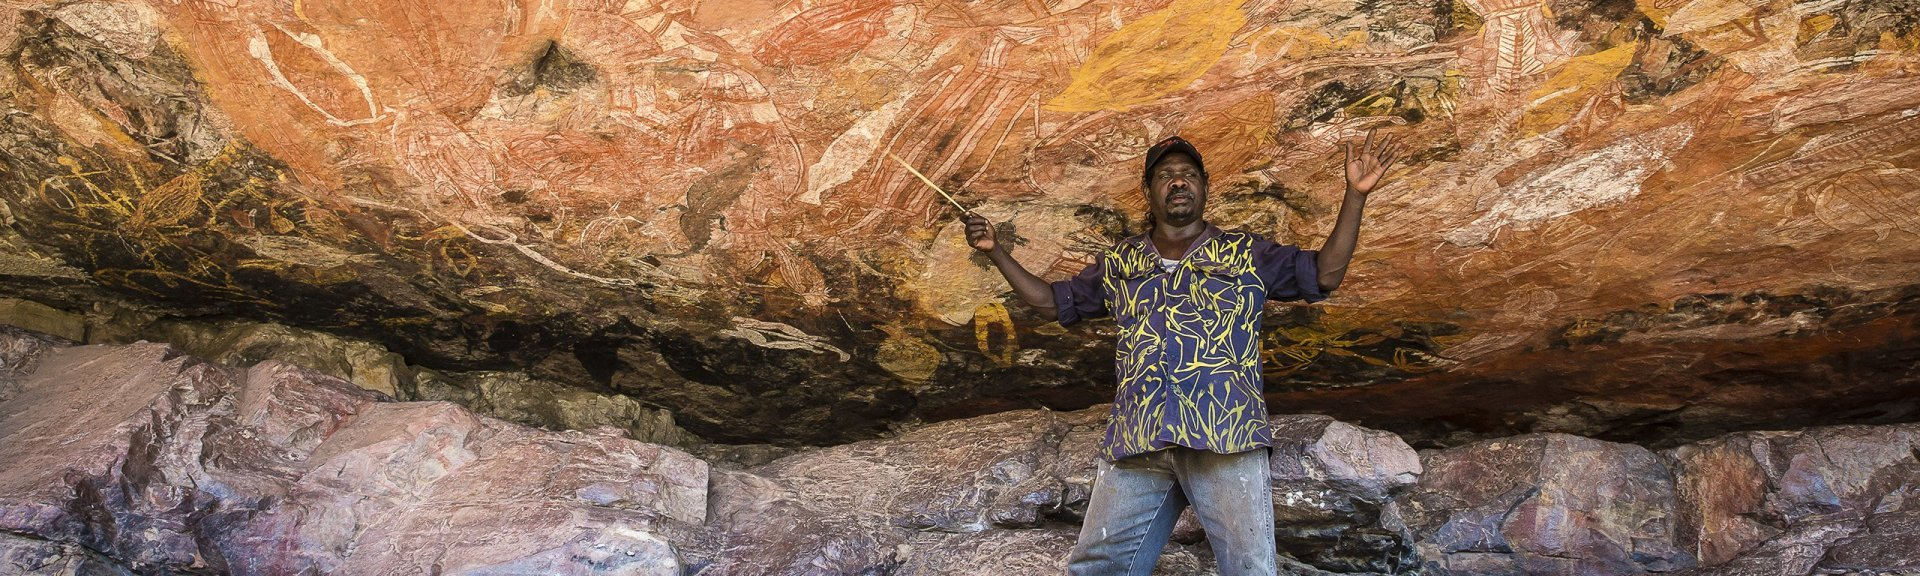 Injalak Arts Rock Art Tour. Roland Burrunali tour guide. Photo: Richard L'Anson.